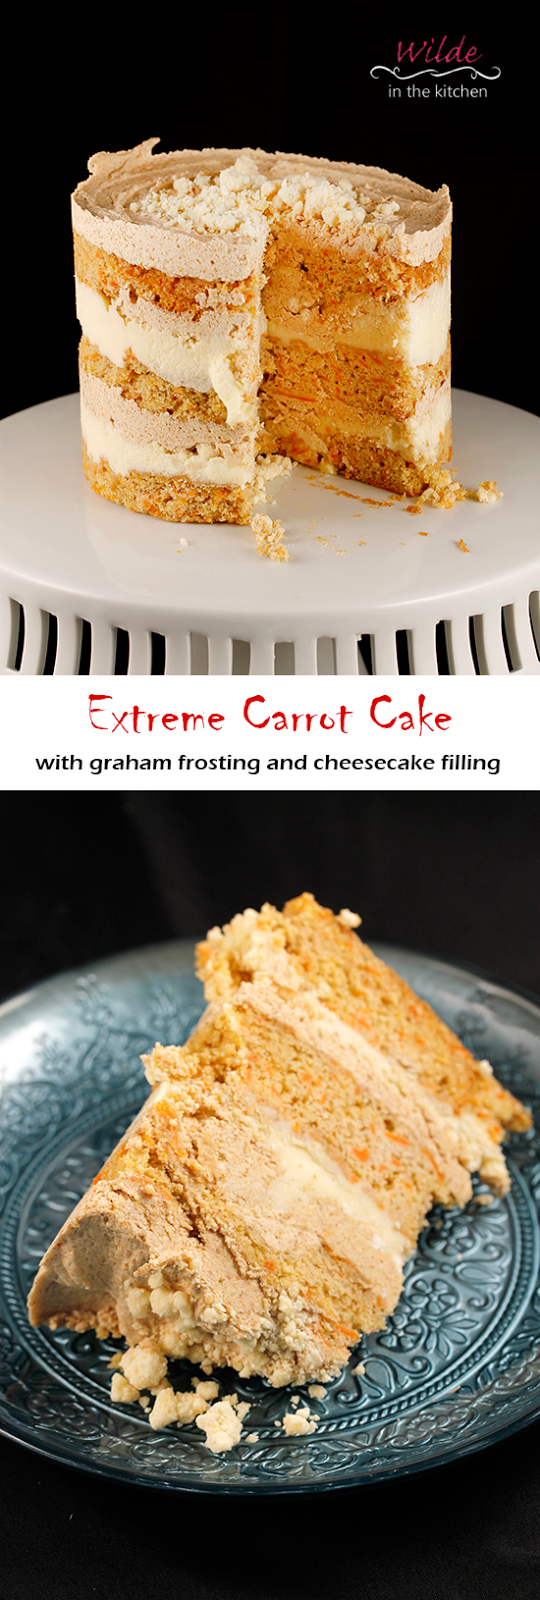 "Wilde in the Kitchen: Over the Top Carrot Cake (from ""Momofuku Milk Bar"" by Christina Tossi"